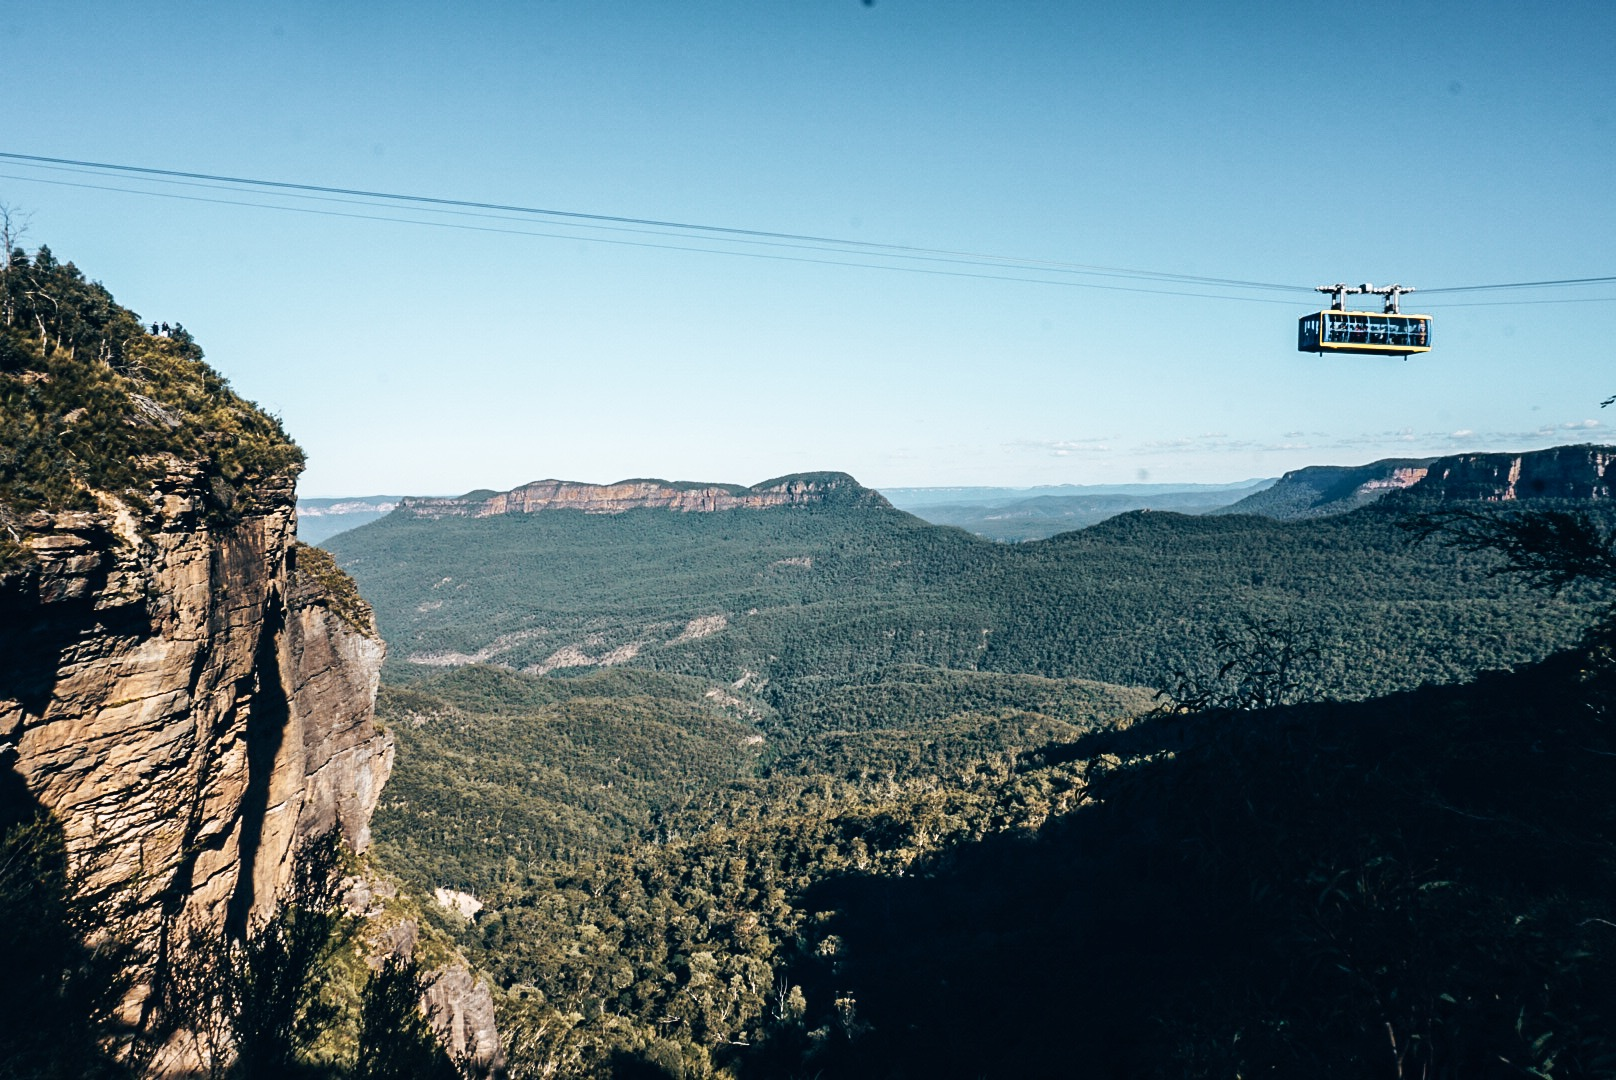 View of Sky Cable going on cable between 2 stops, overlooking Blue Mountains